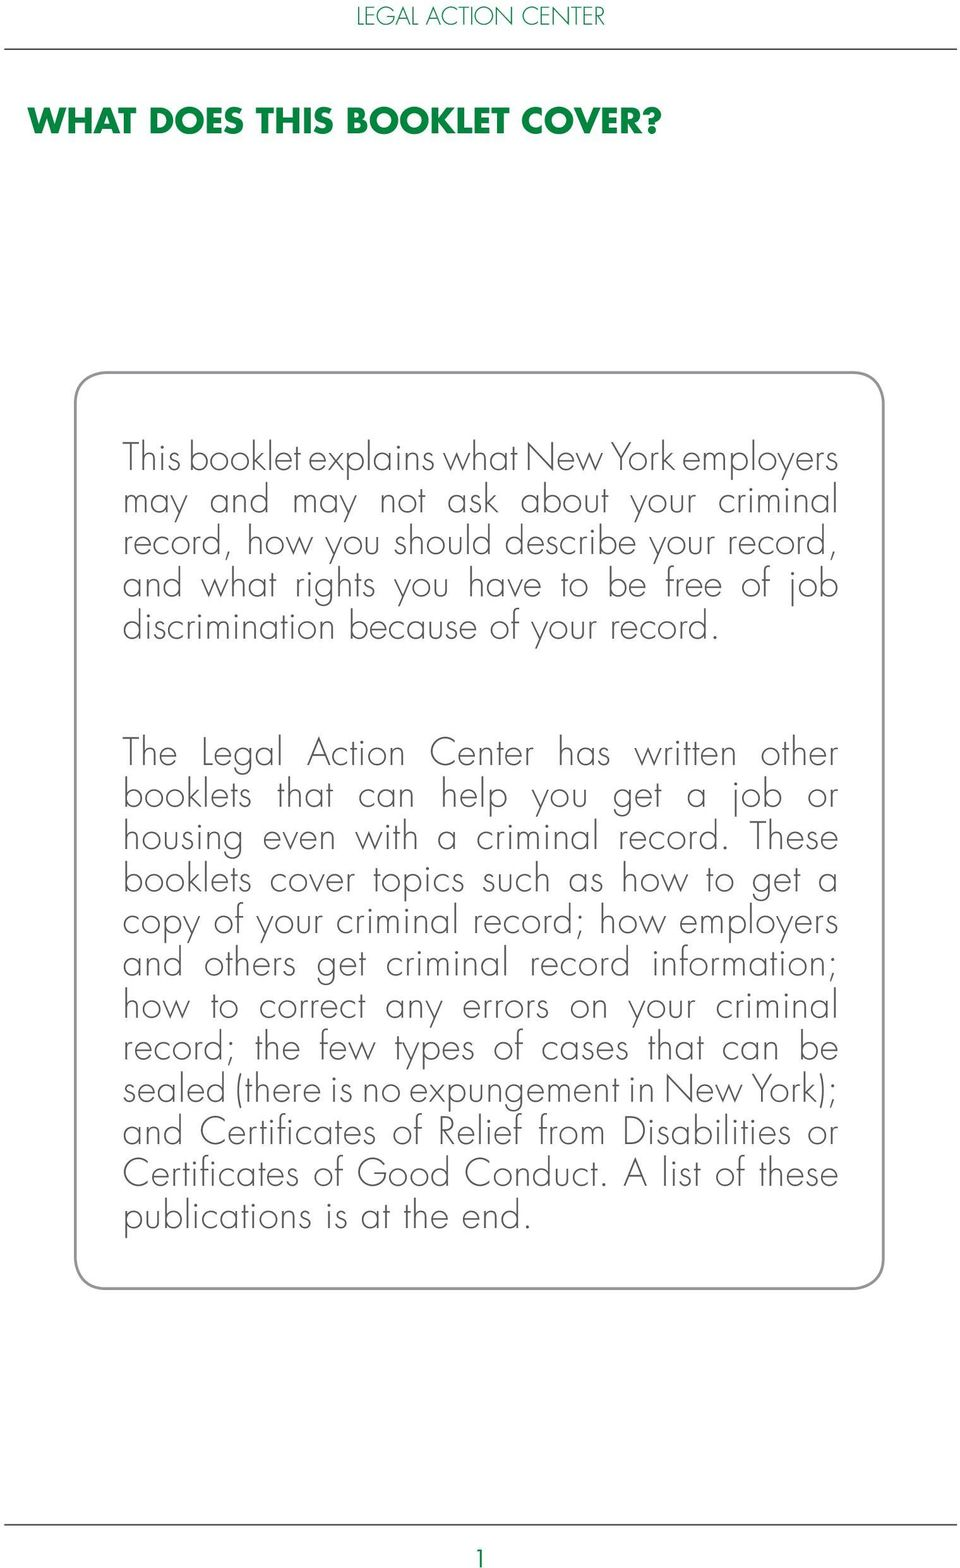 because of your record. The Legal Action Center has written other booklets that can help you get a job or housing even with a criminal record.